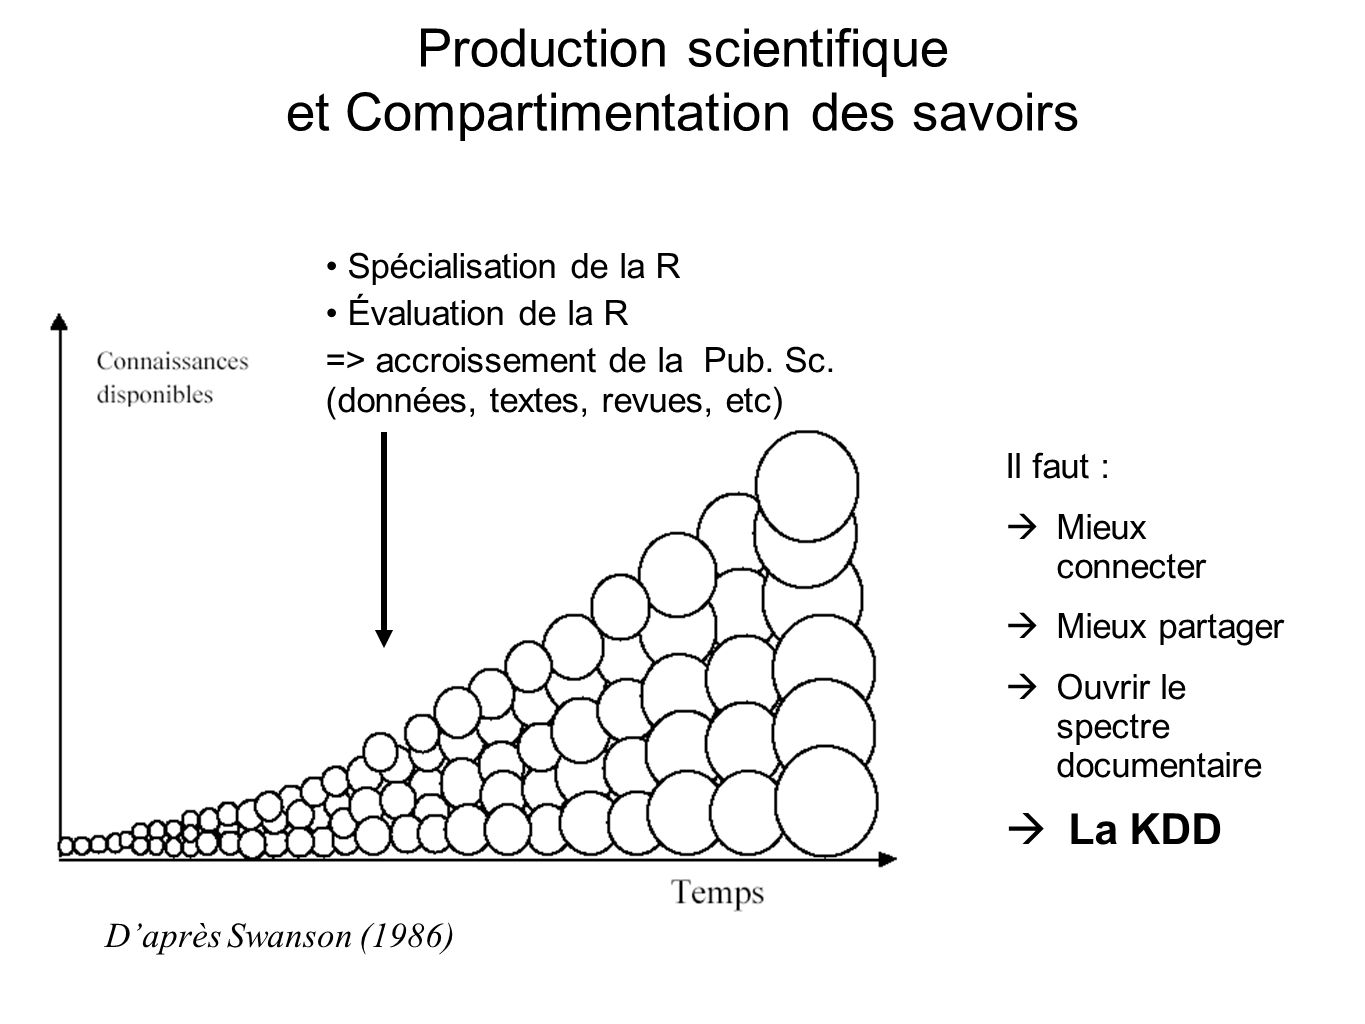 Production scientifique et Compartimentation des savoirs